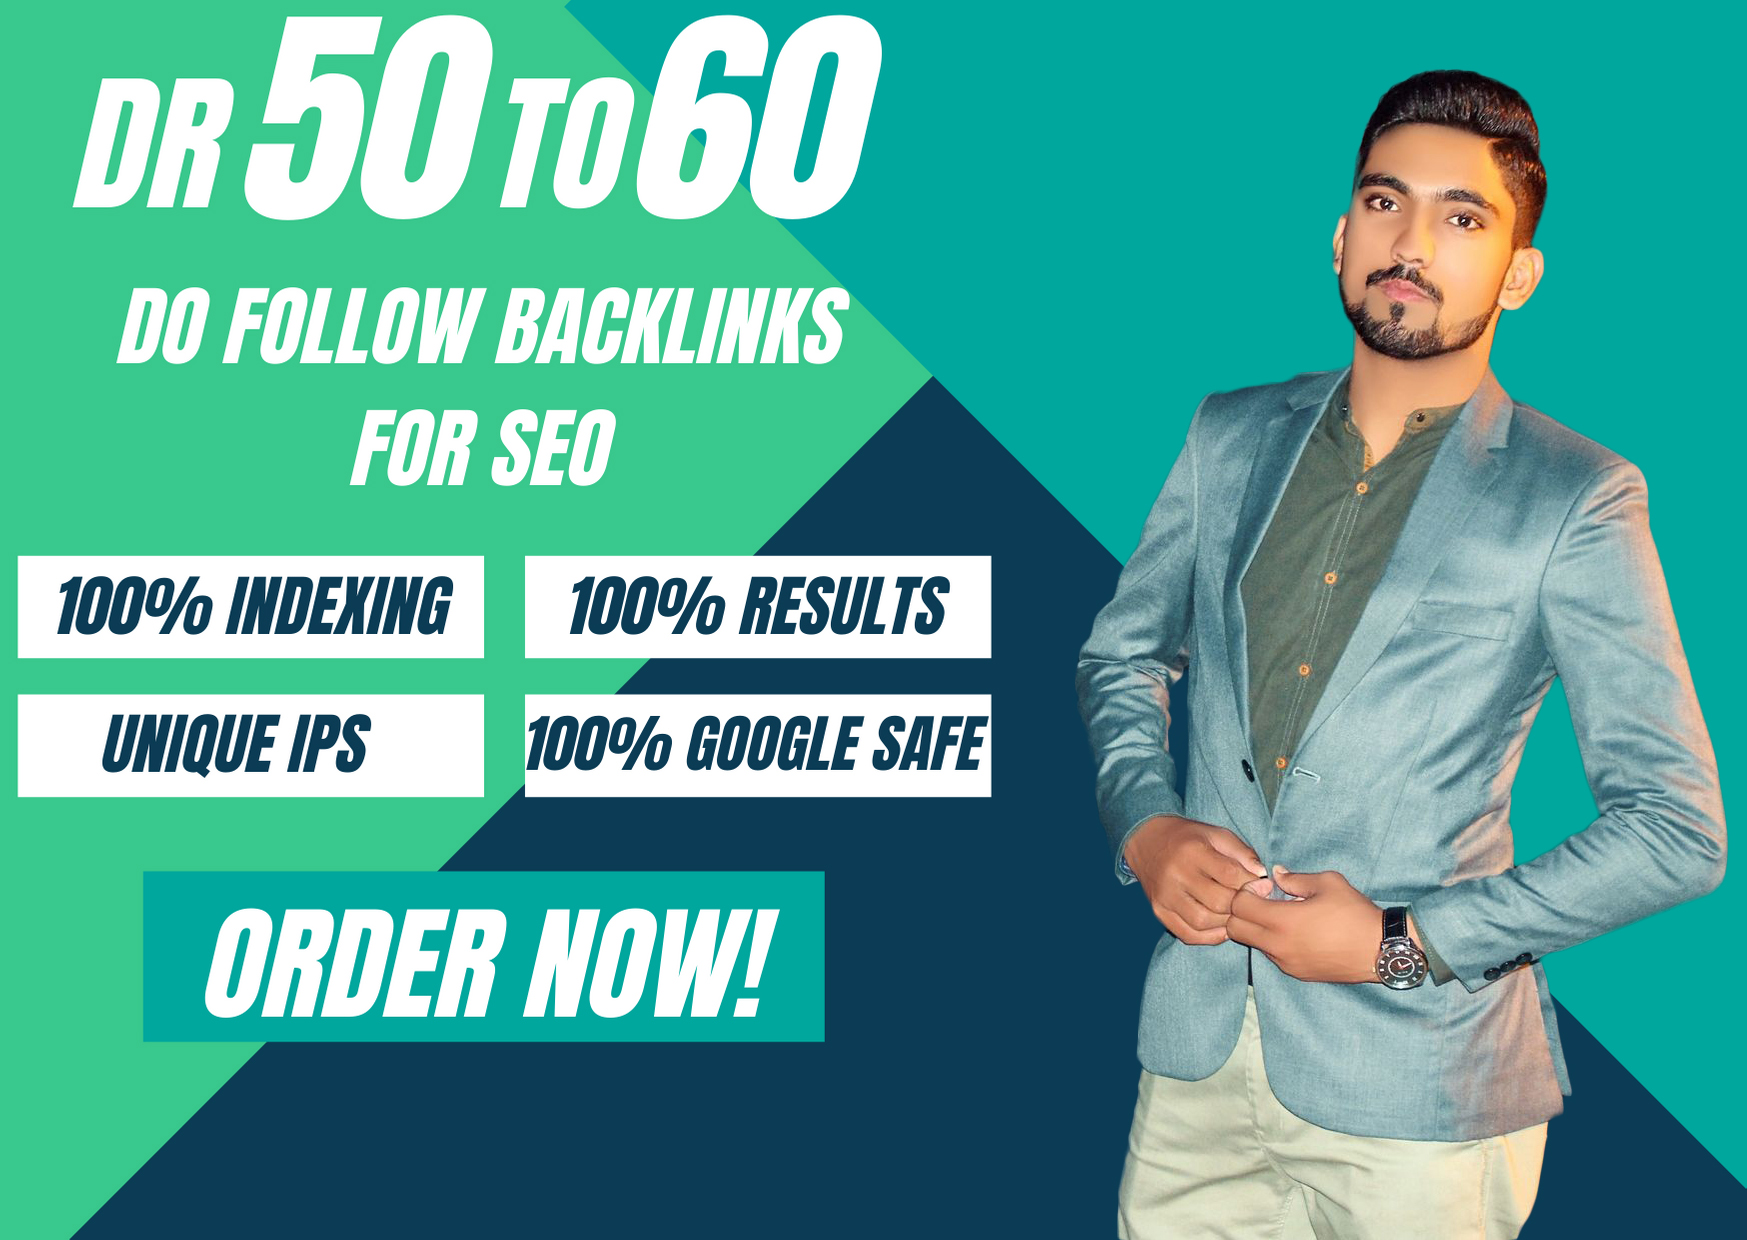 I will build 50 DR 50 to 60 plus quality pbn dofollow backlinks for seo to rank no 1